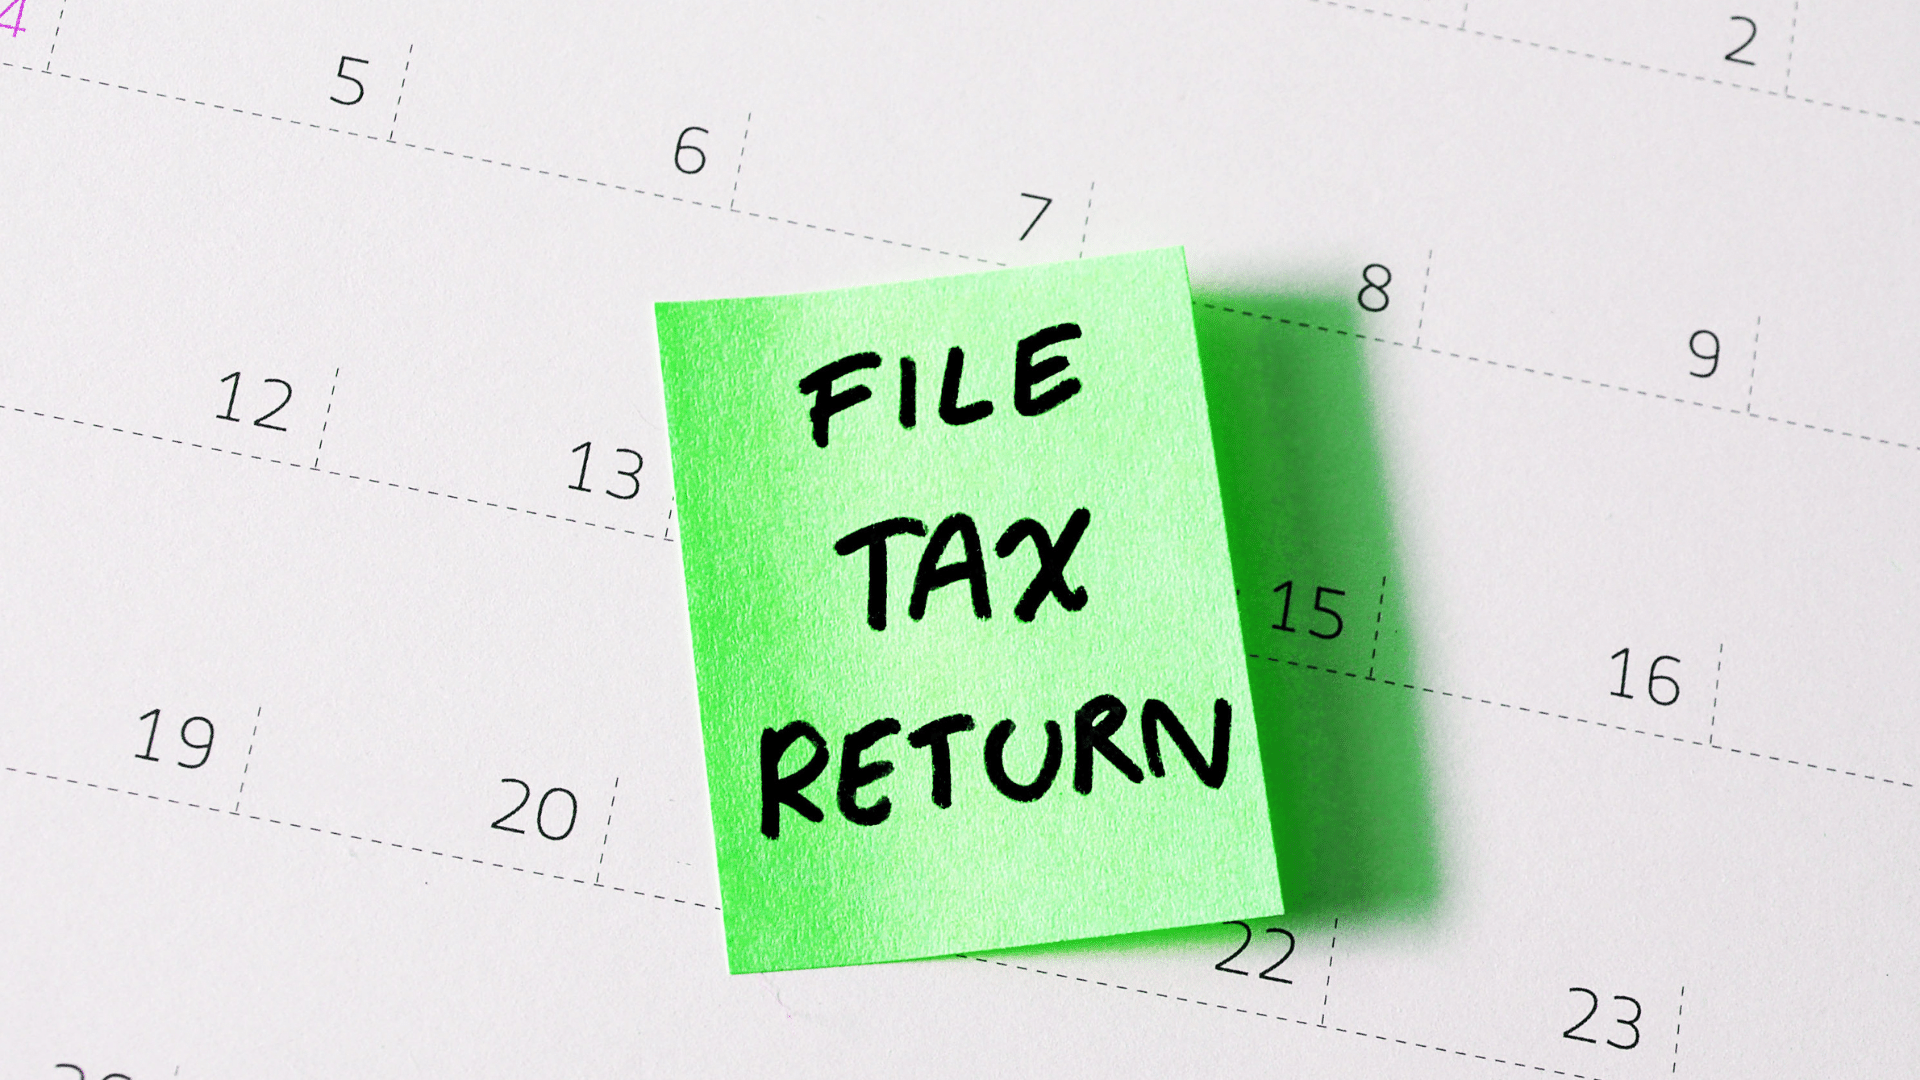 Individual Tax Return Filing 2020/21 - HKWJ Tax Law